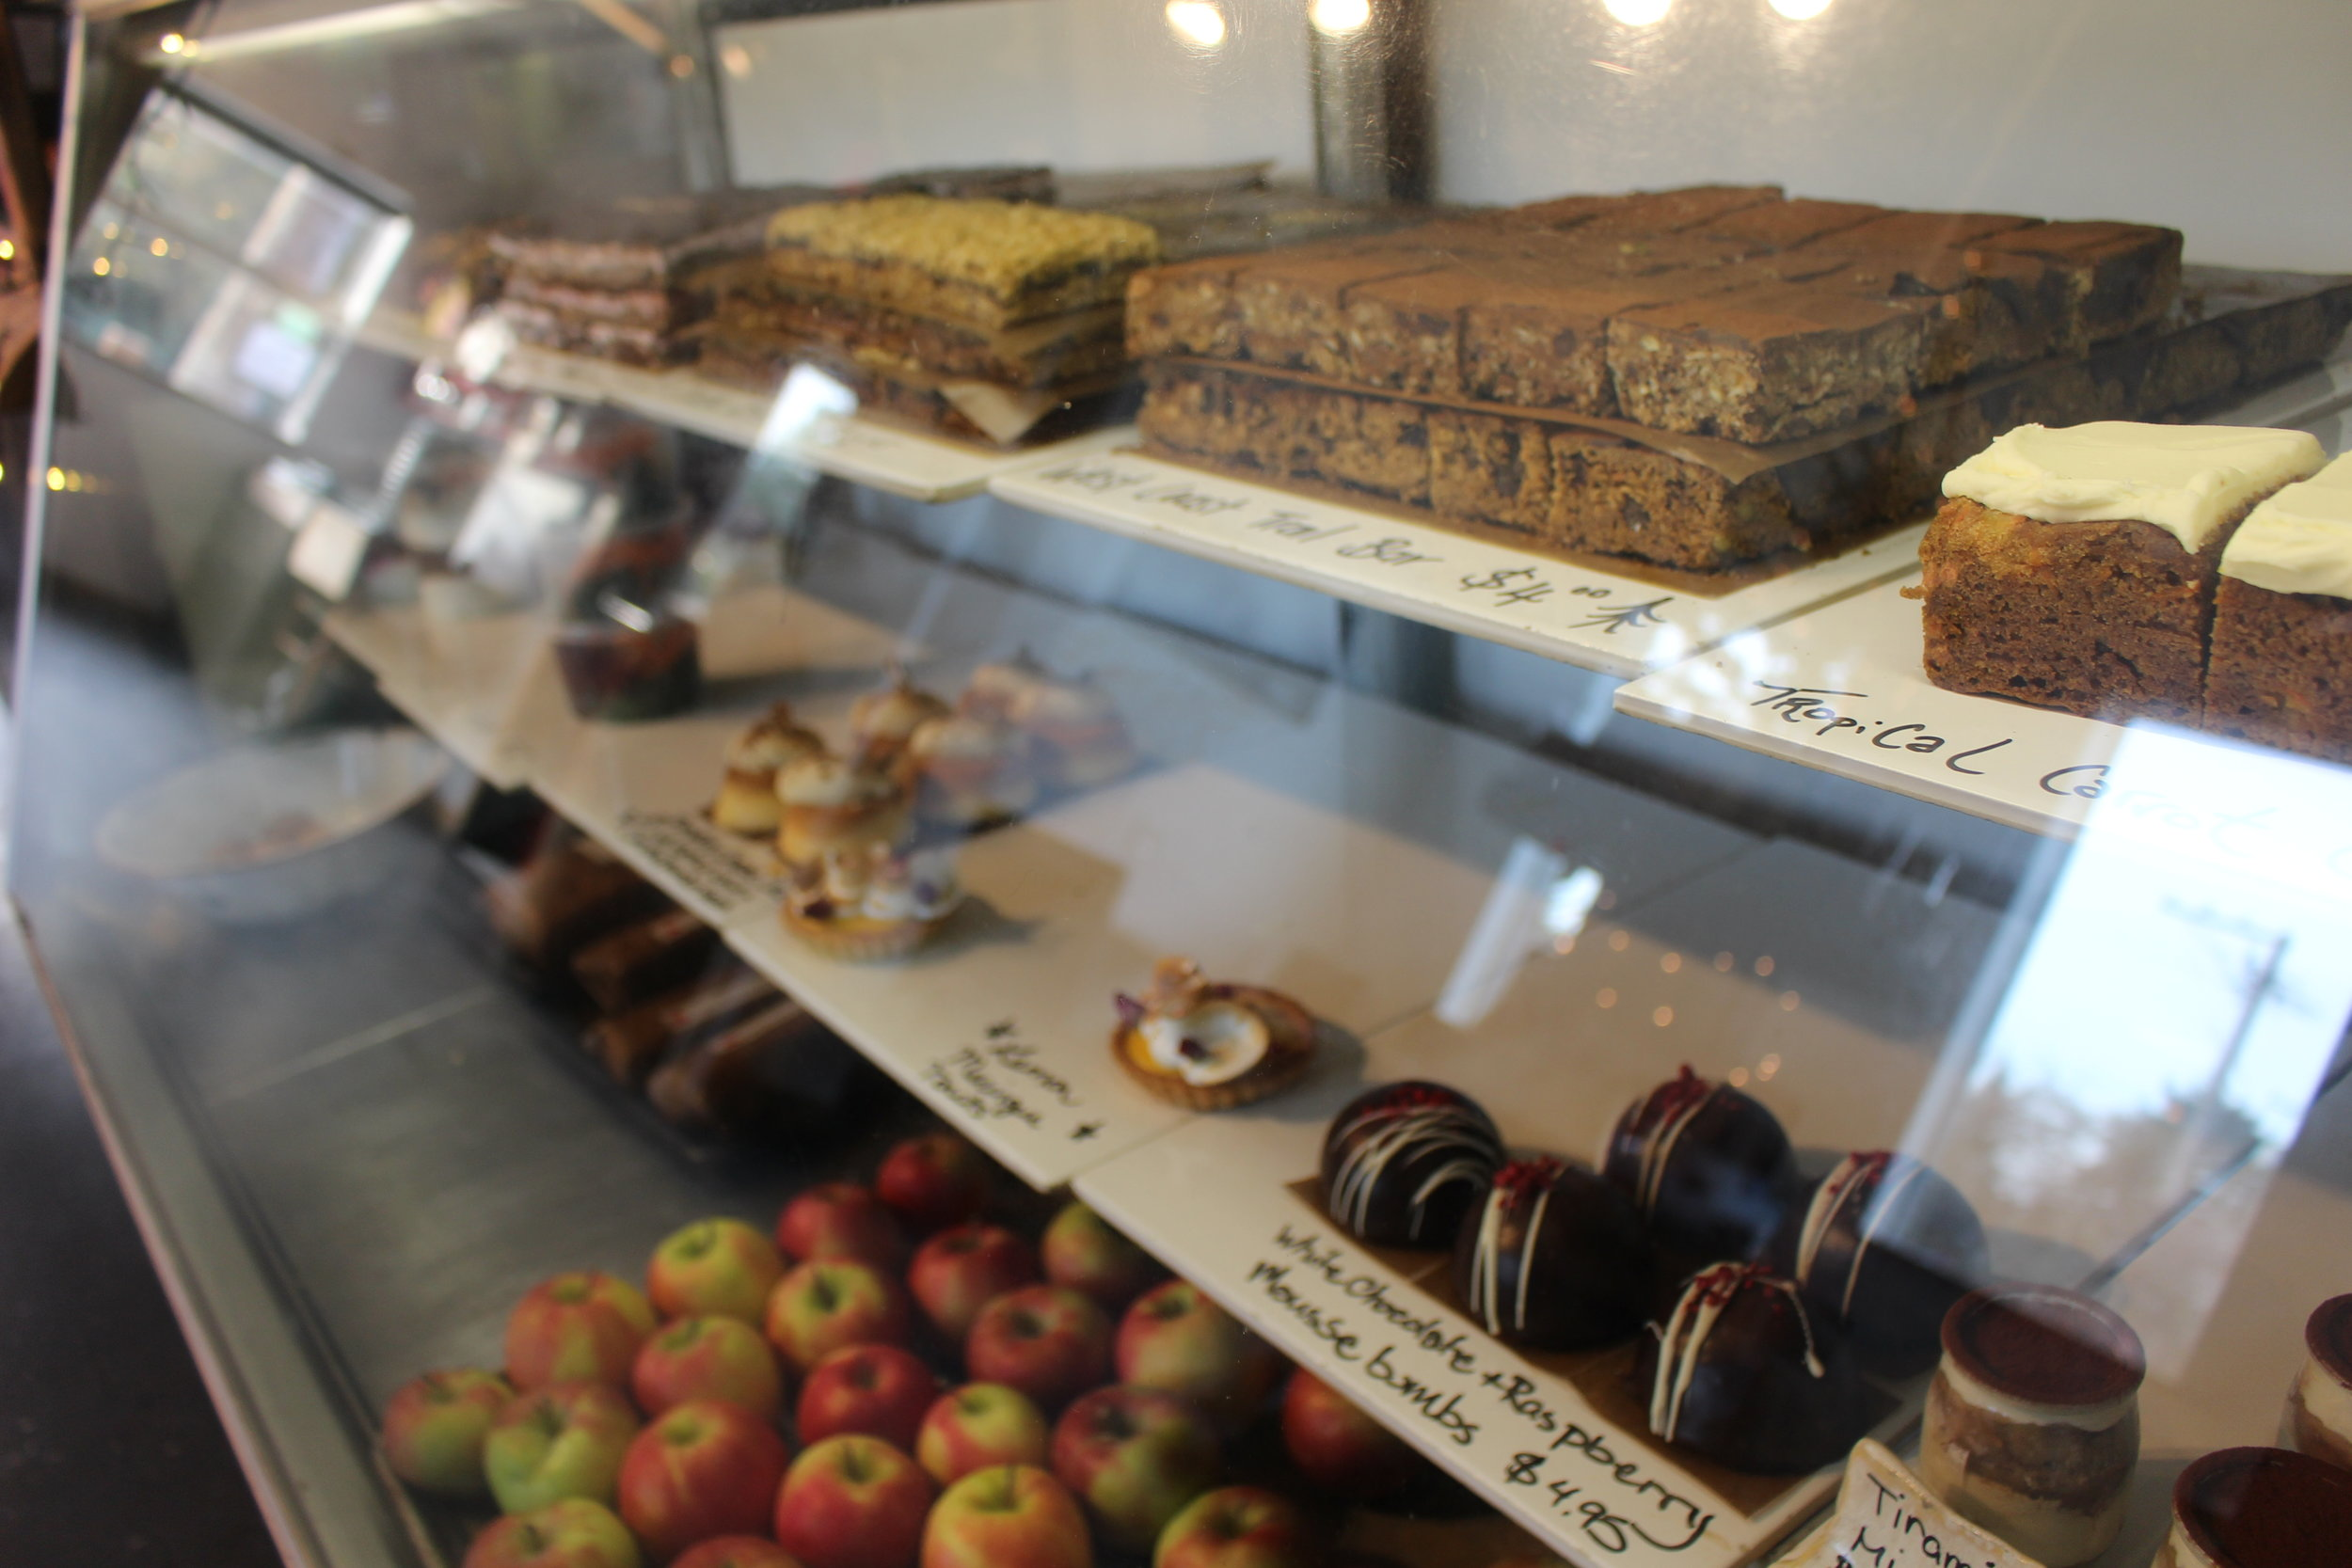 The bakery has a wider variety of both healthy and not so healthy snacks